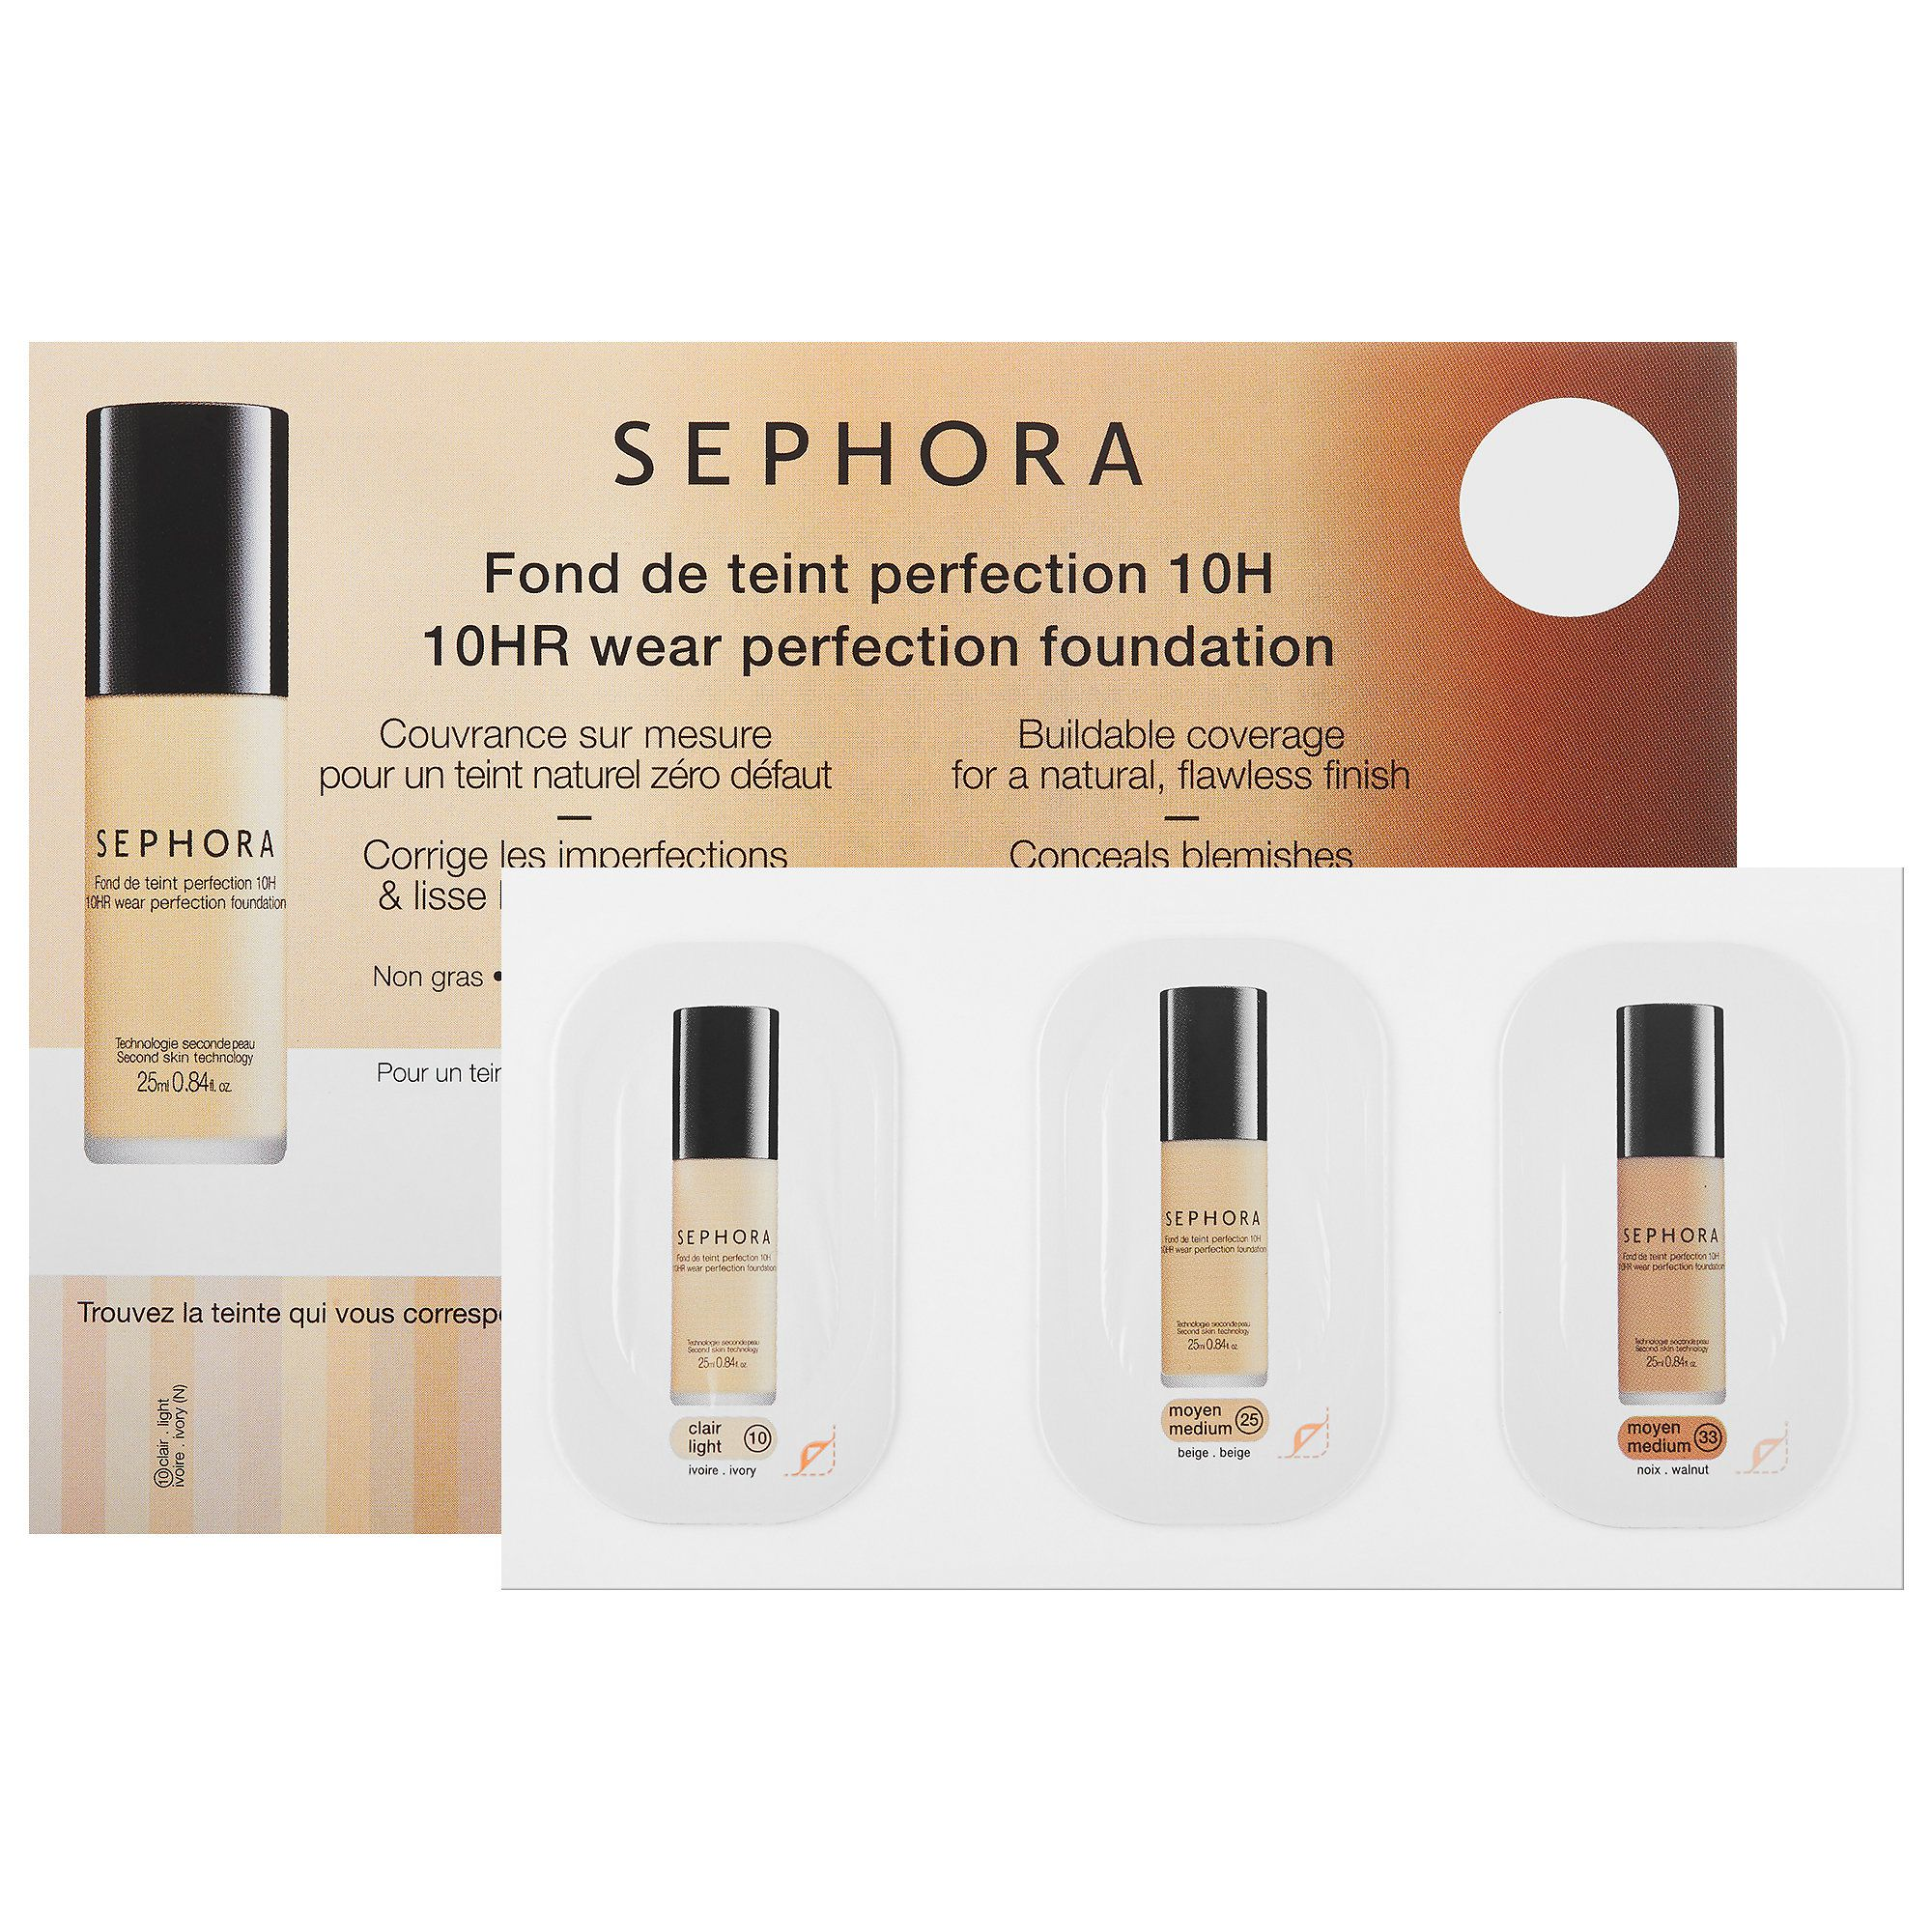 Sephora, 10HR Wear Perfection Foundation samples | beauty